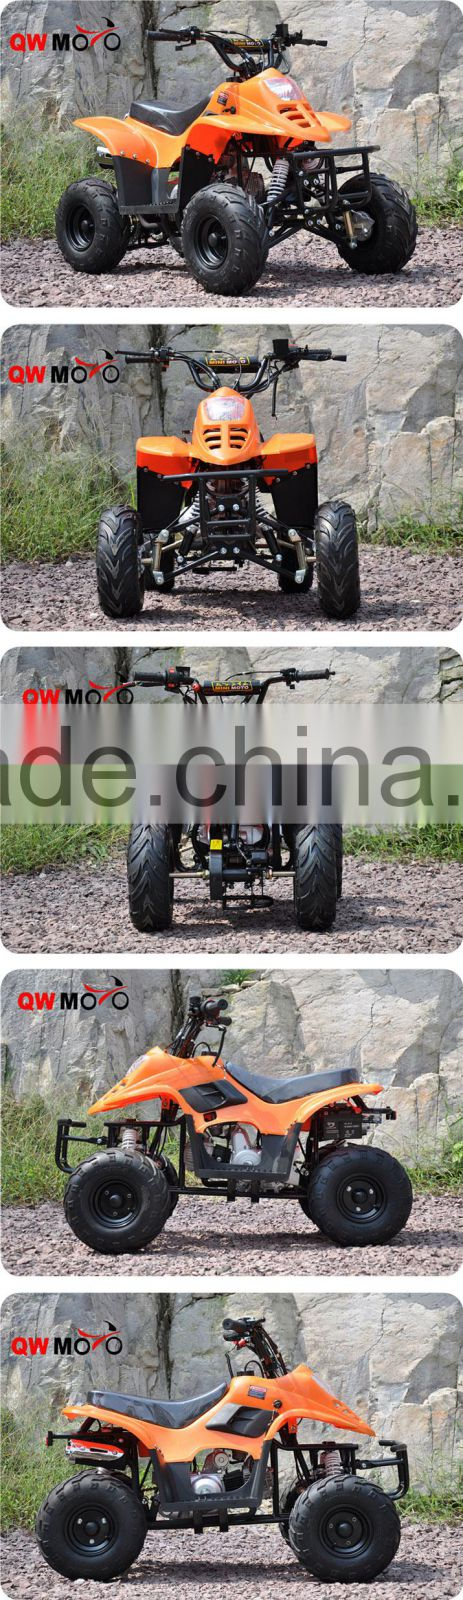 QWMOTO CE Electric Start 110cc Displacement 4 Wheeler Motorcycle 110CC Go Kart 110cc Dirt Quad Bike 110CC Gas powered Kids ATV